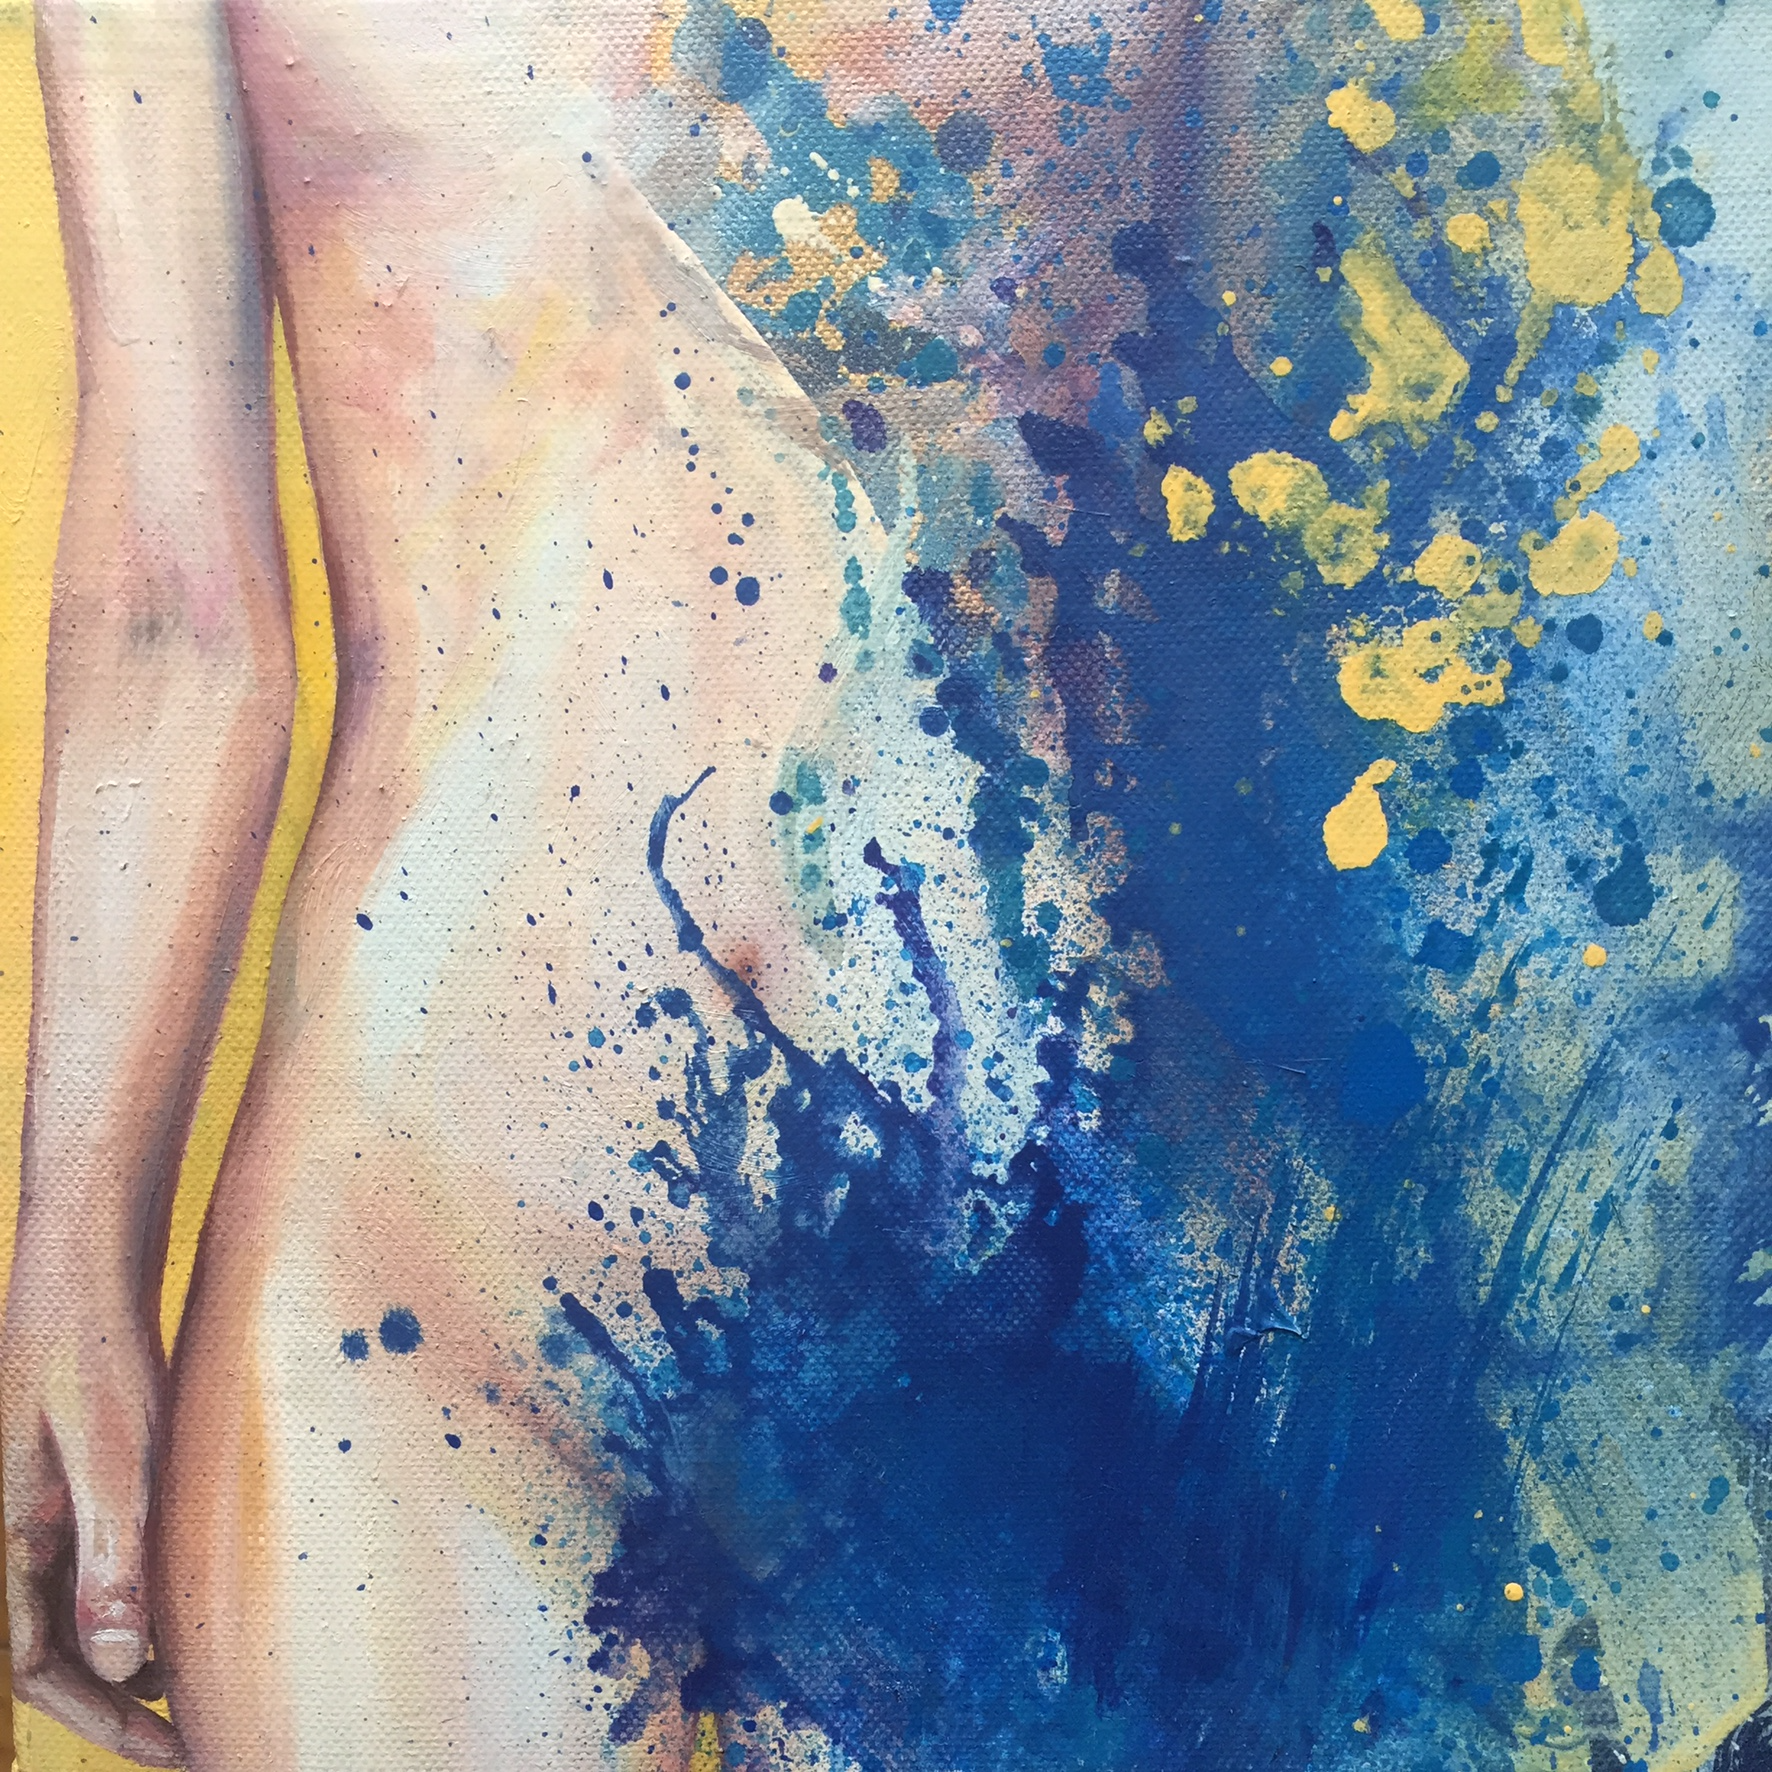 Who Else is Incomplete (detail 2)